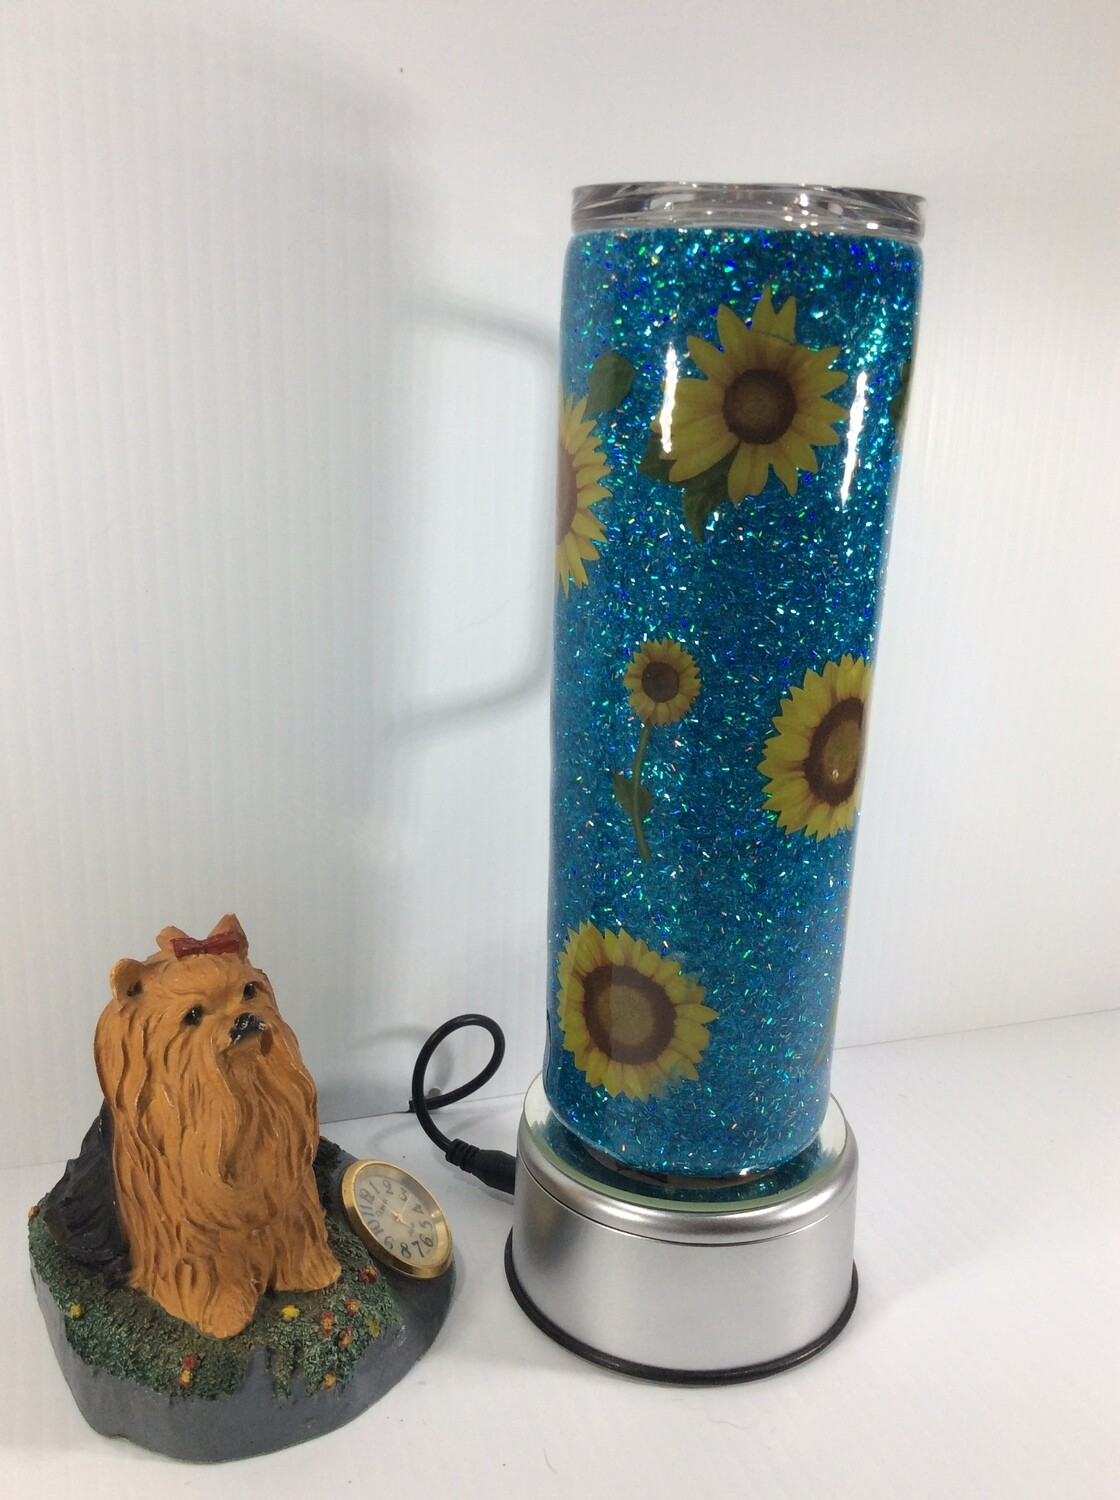 Sunflower stainless steel tumbler with a handle